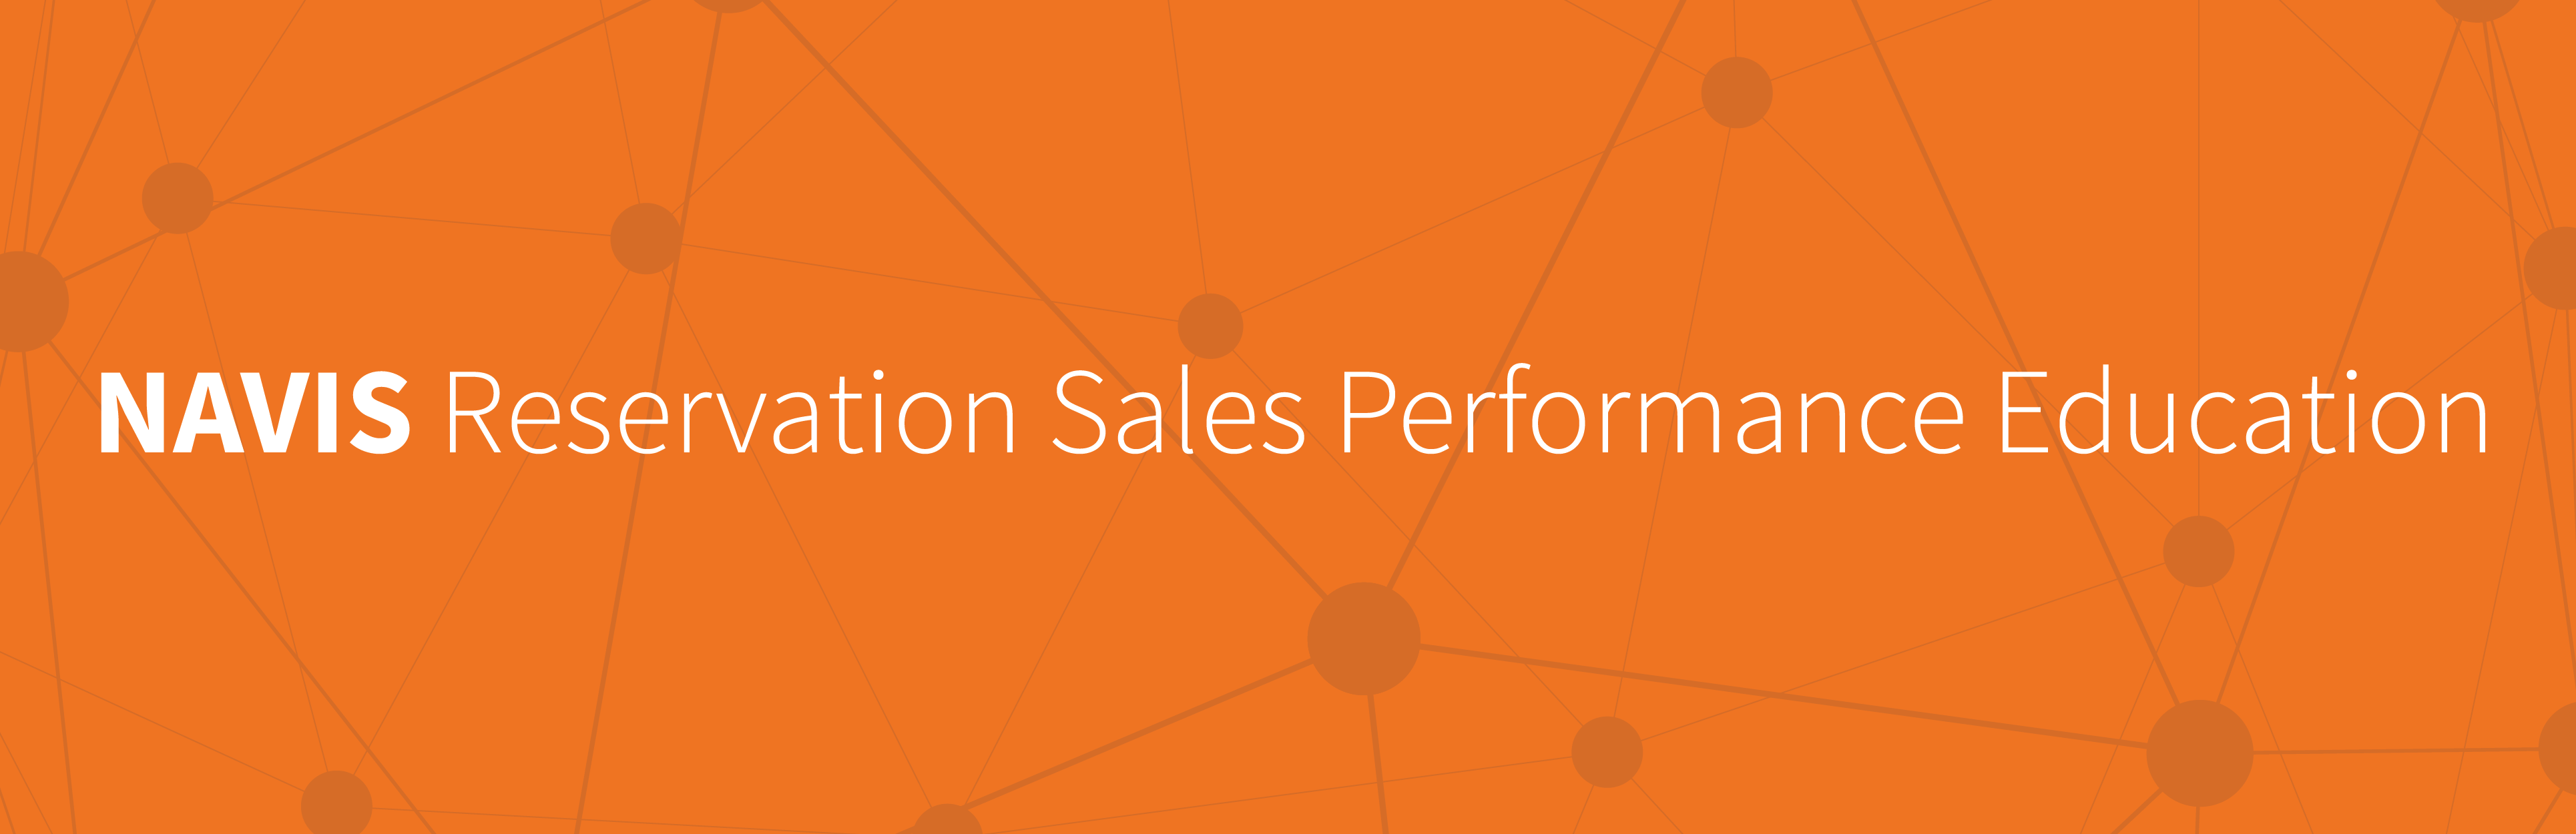 NAVIS Reservation Sales Performance Education Fall 2019